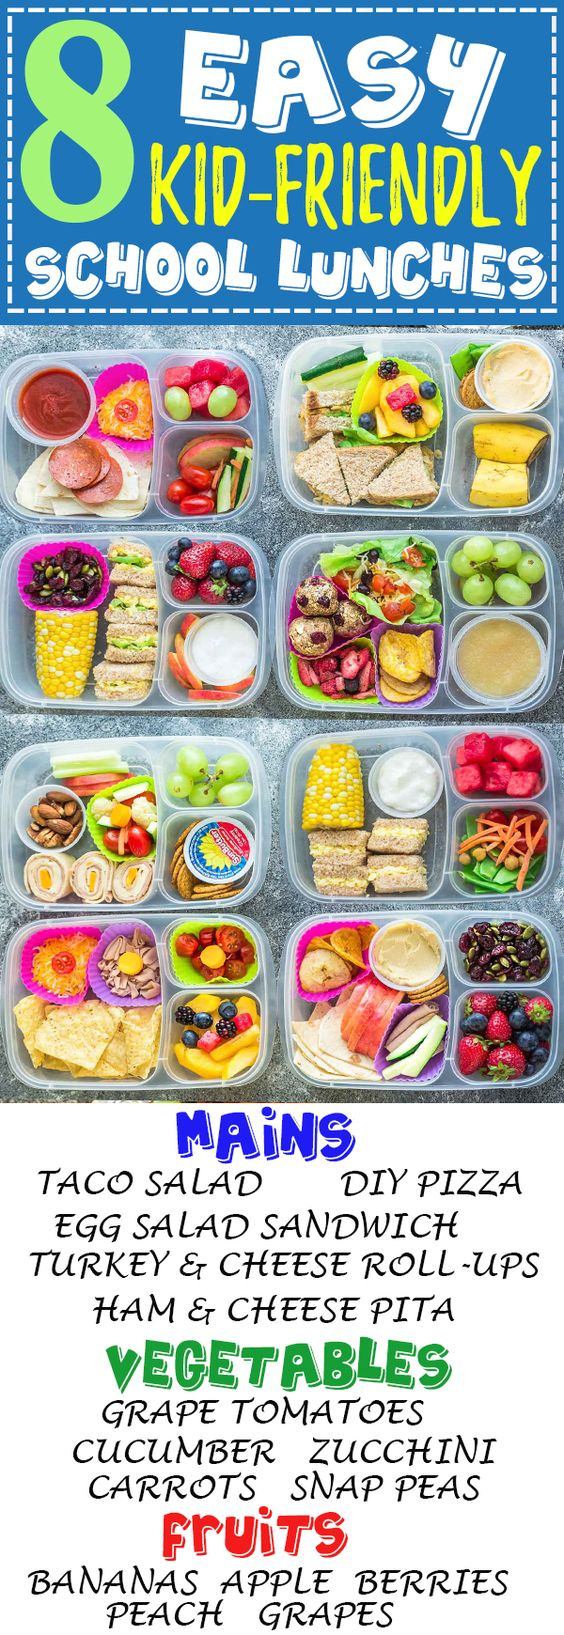 8 Easy, Healthy and Delicious Lunches for Back To School. With tons of ideas along with options for nut free, dairy free and gluten free choices. There is something for even picky eaters who will want to finish their food with no leftovers. Perfect for adults too who are looking for recipes and ideas other than sandwiches to bring to work along with tips on how to be more efficient when packing lunch boxes.